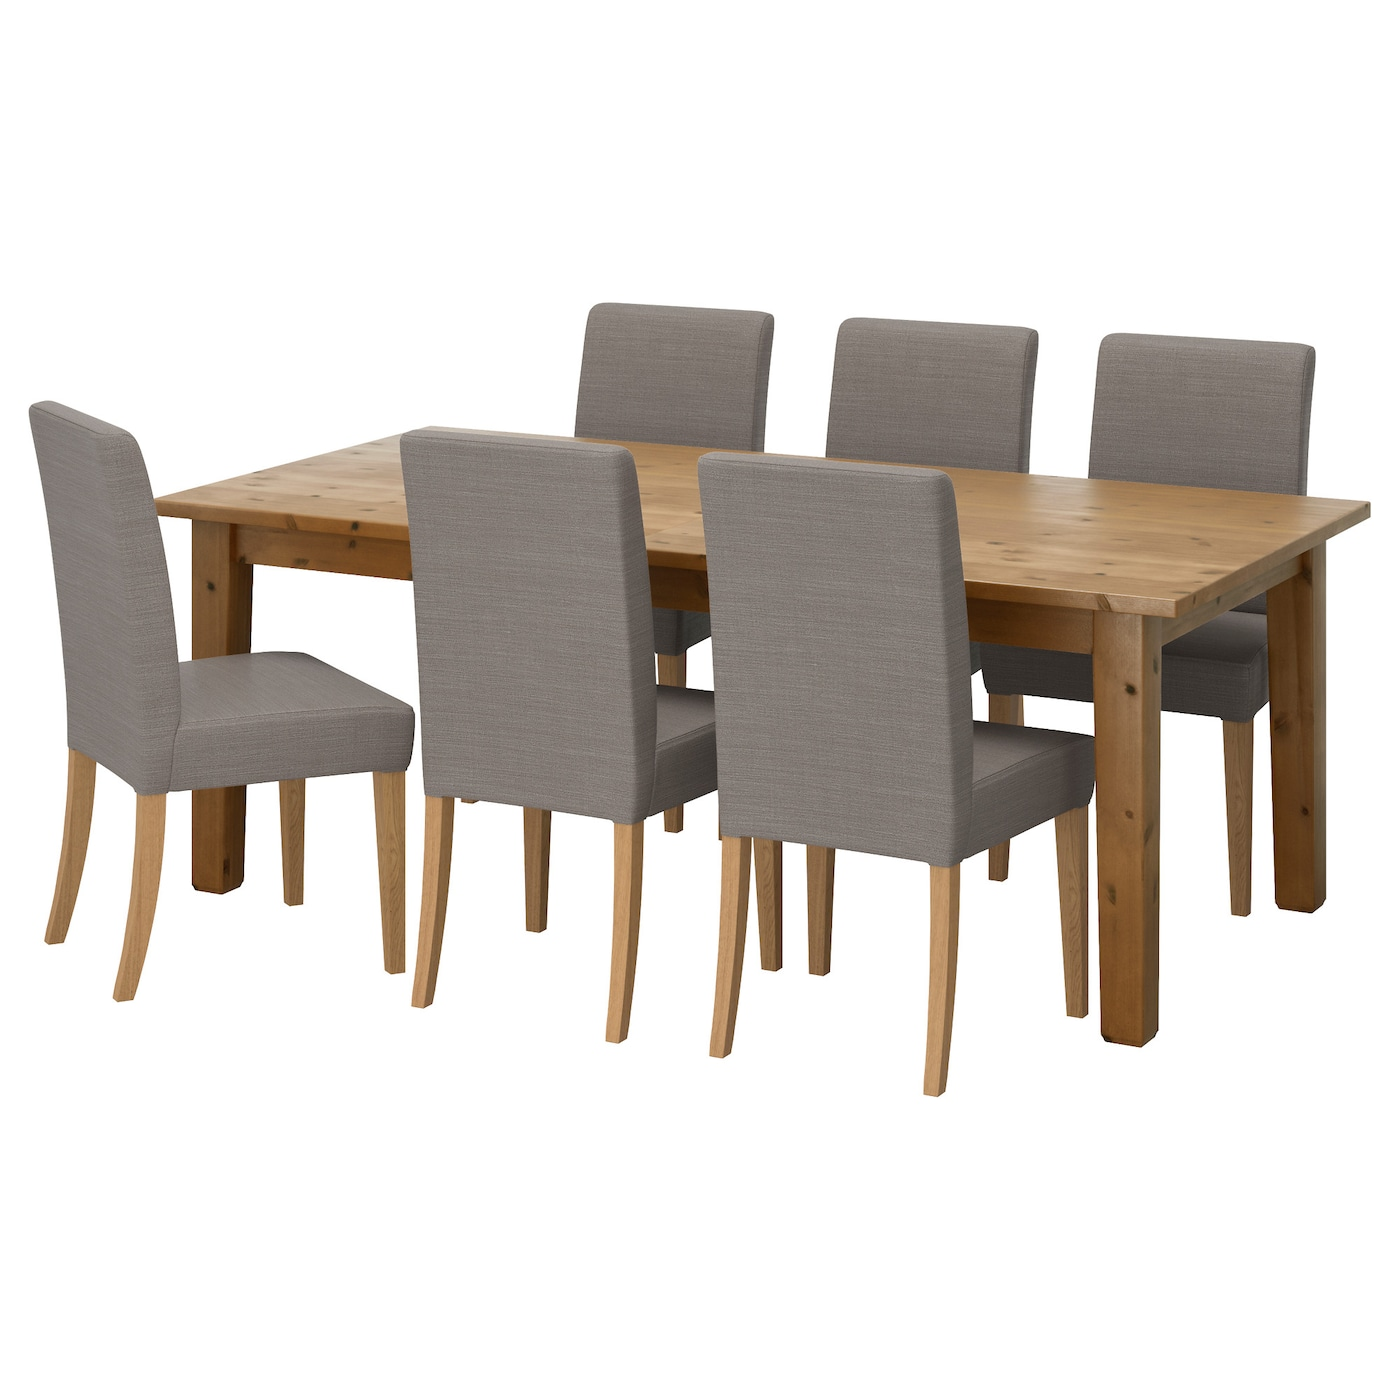 henriksdal storn s table and 6 chairs antique stain nolhaga rh ikea com kitchen table and 6 chairs ikea kitchen table and 6 chairs ikea